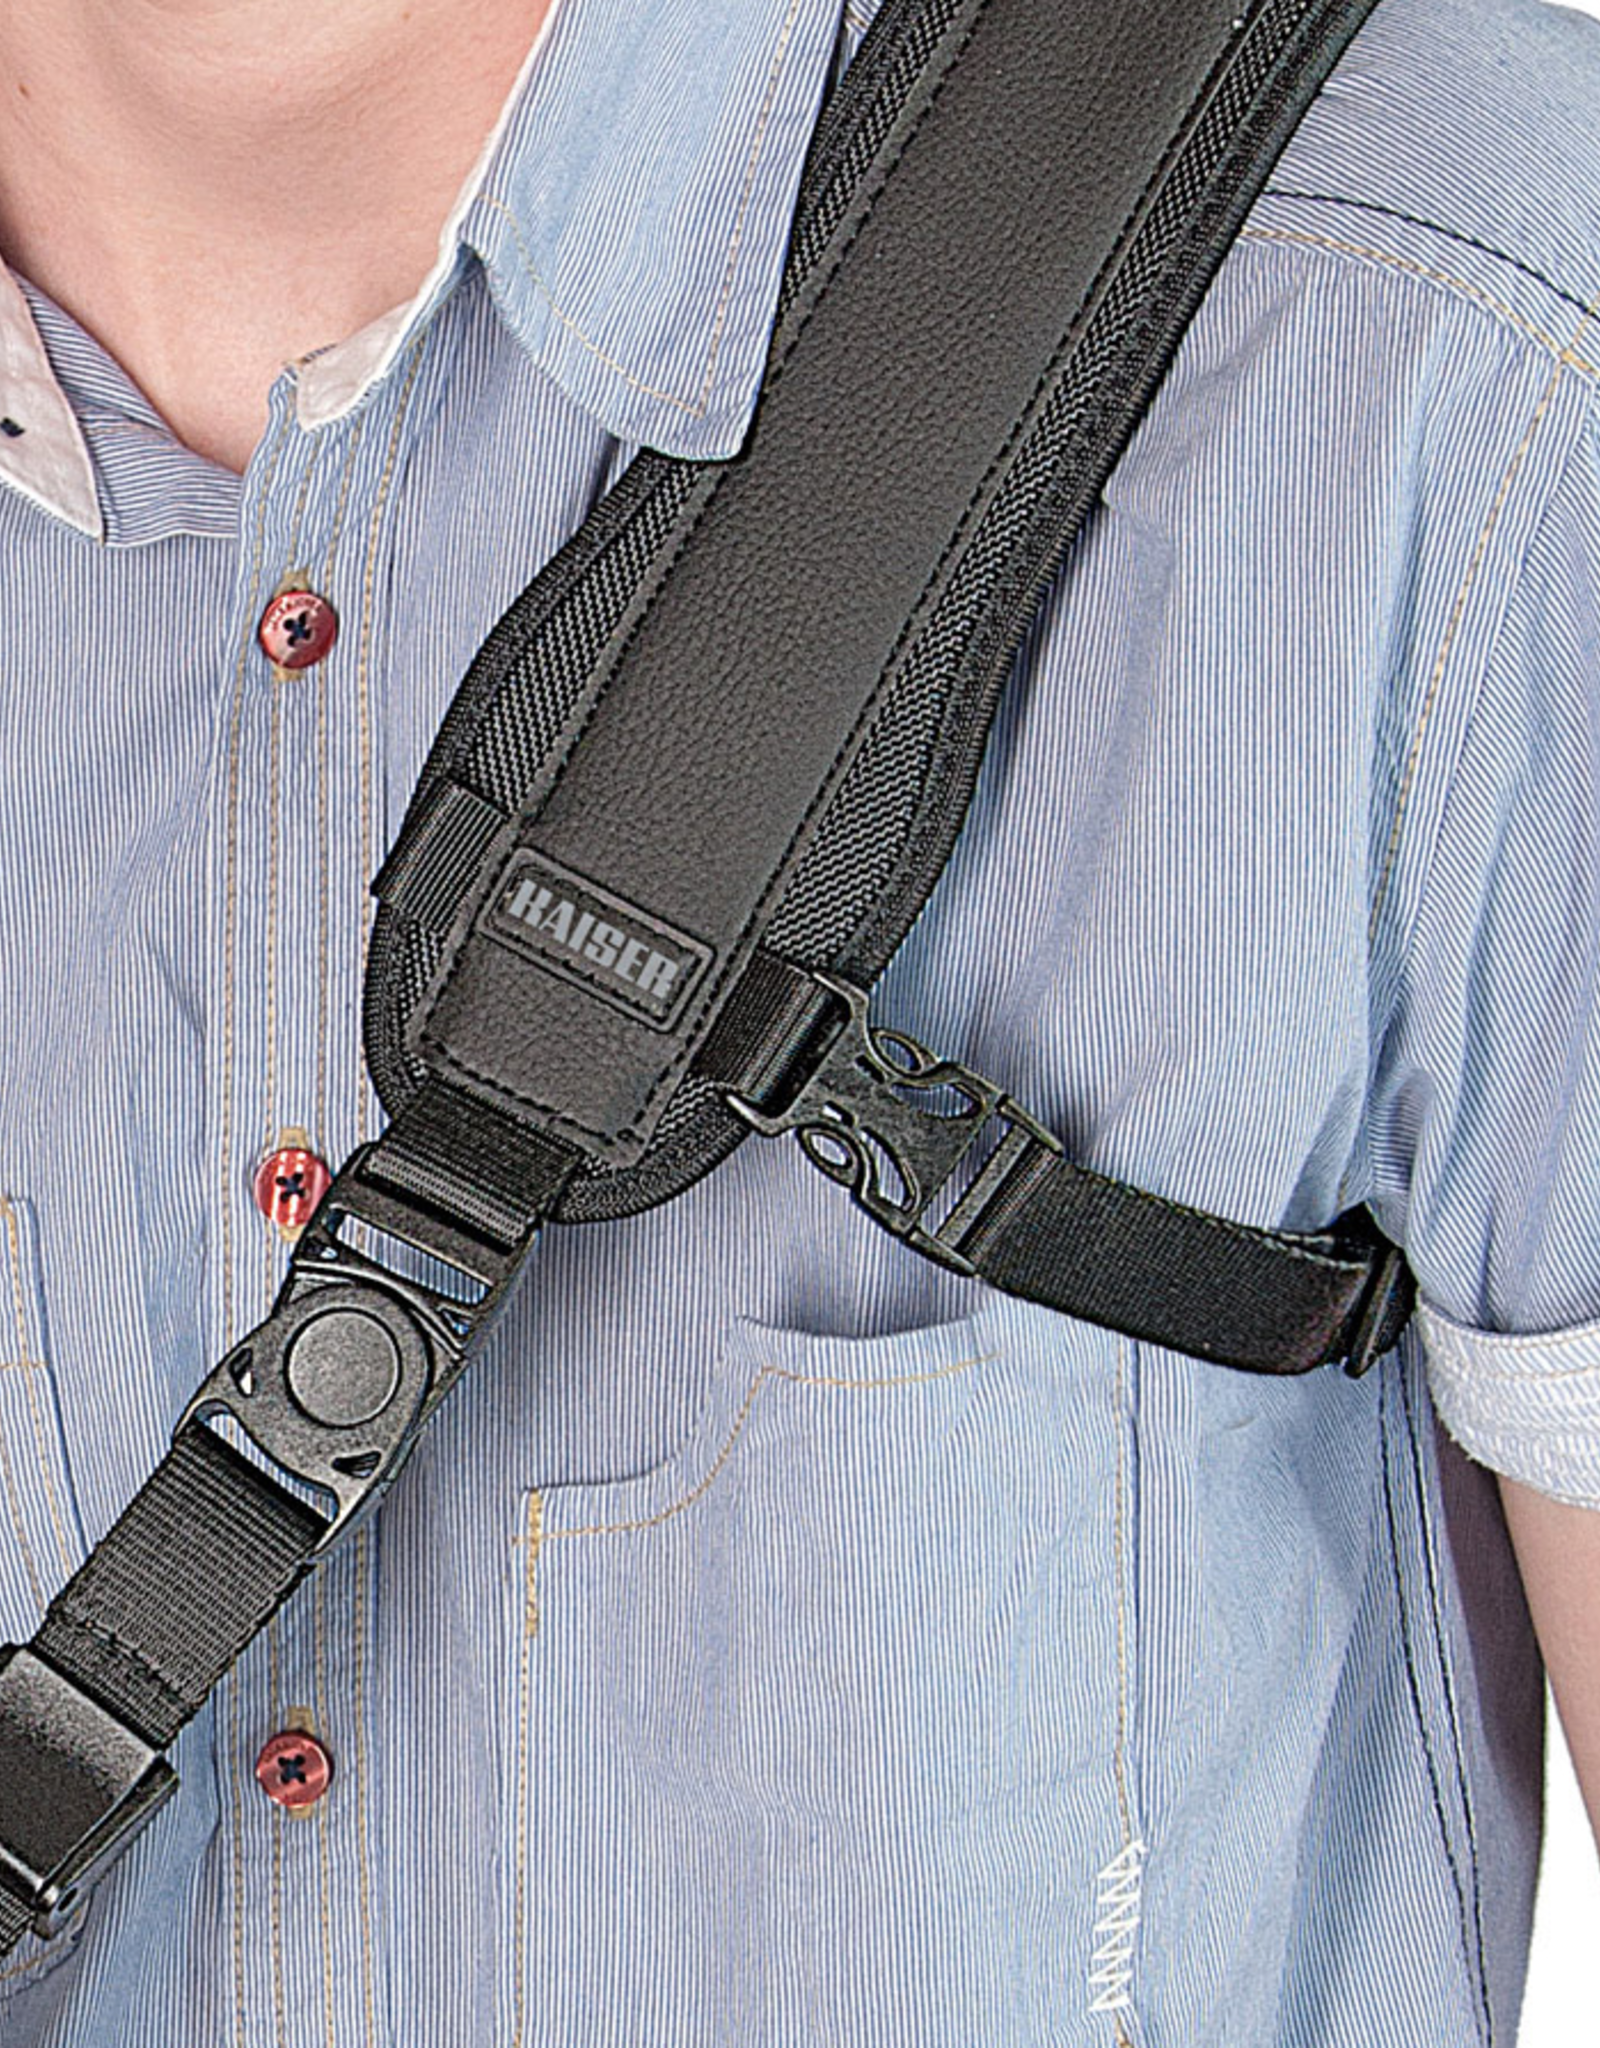 Kaiser Action Strap Fast Action Camera Strap